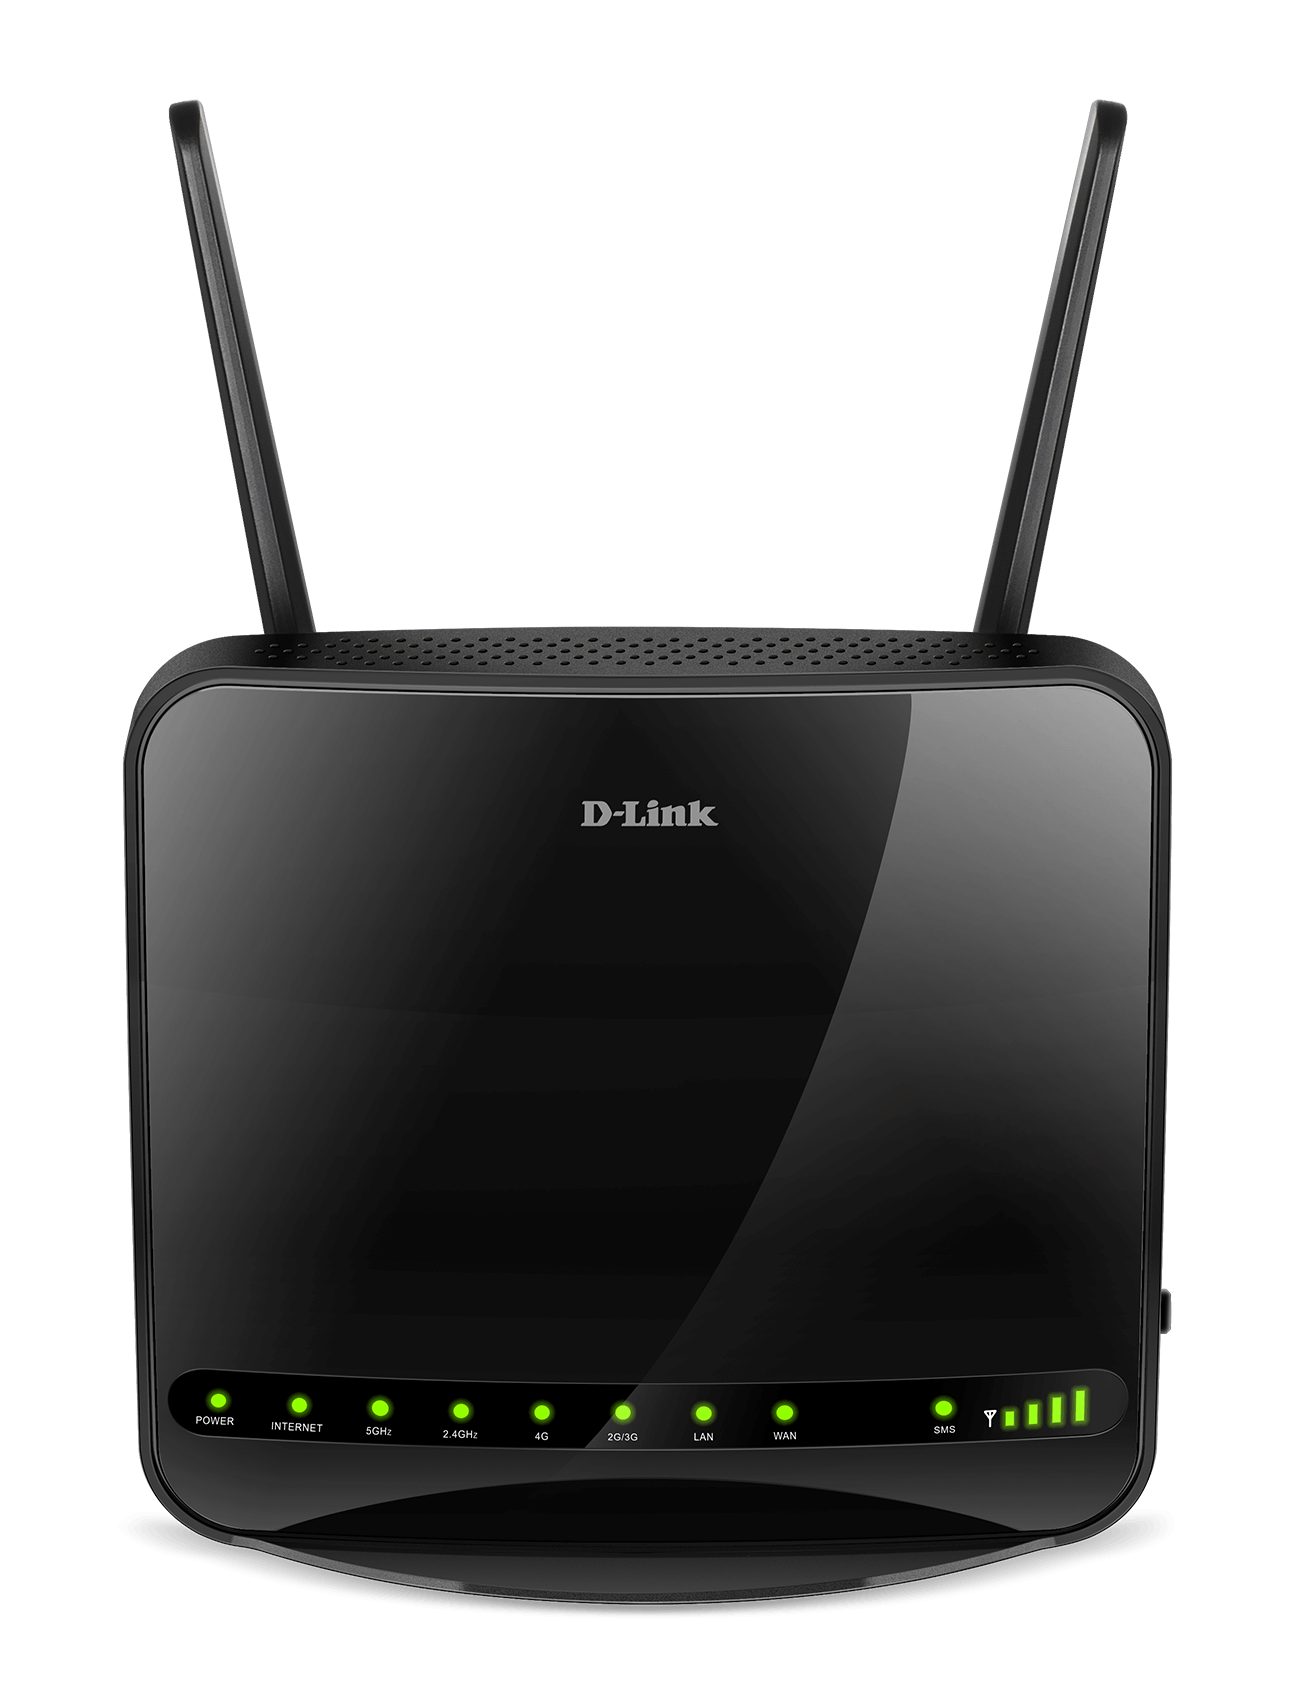 DWR-953 B1 Wireless AC1200 4G LTE Multi-WAN Router Image Front